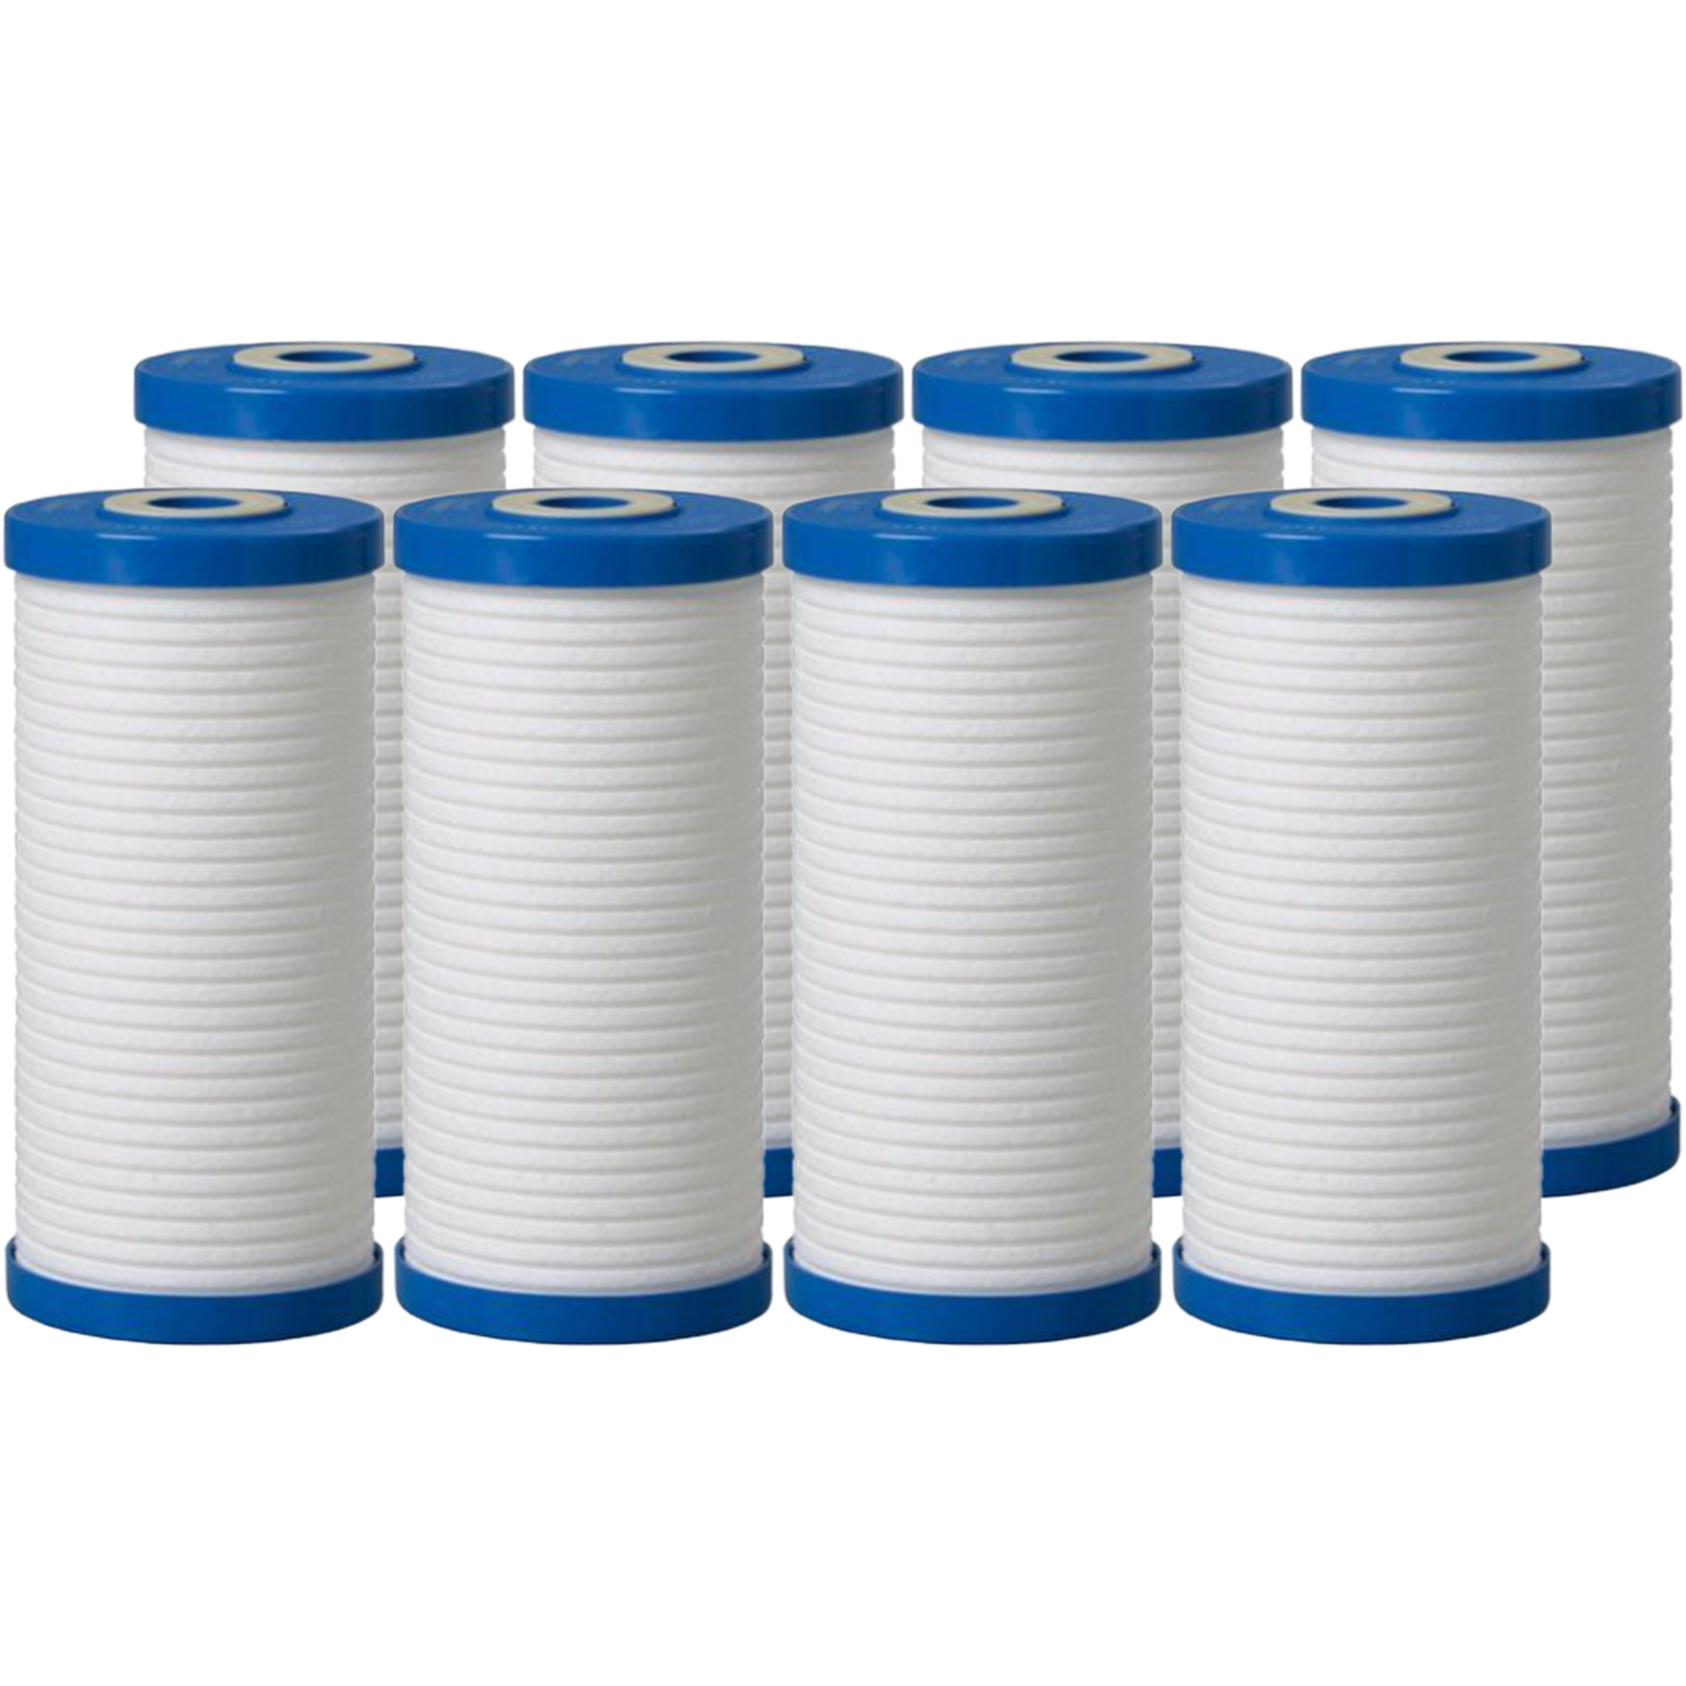 SpiroPure Replacement for Aqua-Pure AP810 5618902 10x4.5 Water Filters 8 Pack